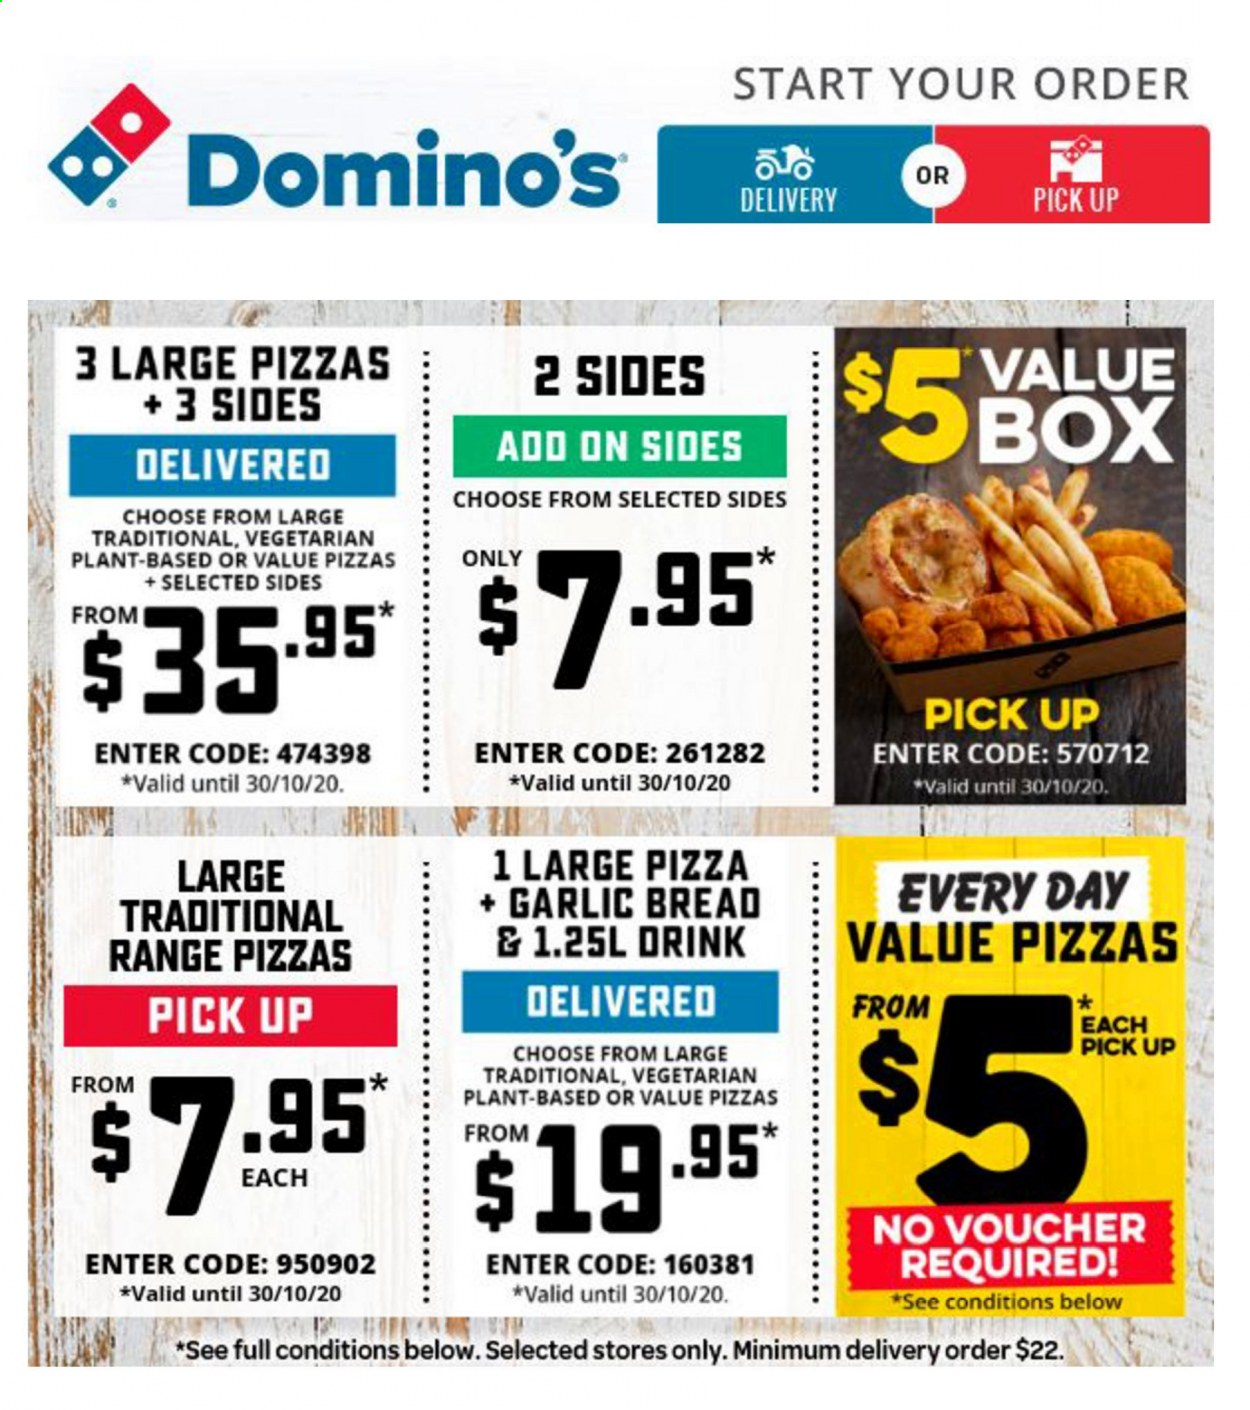 Domino's Catalogue - 30.10.2020 - 30.10.2020 - Sales products - bread, garlic, veggie, pizza, drink, vegetarian. Page 1.